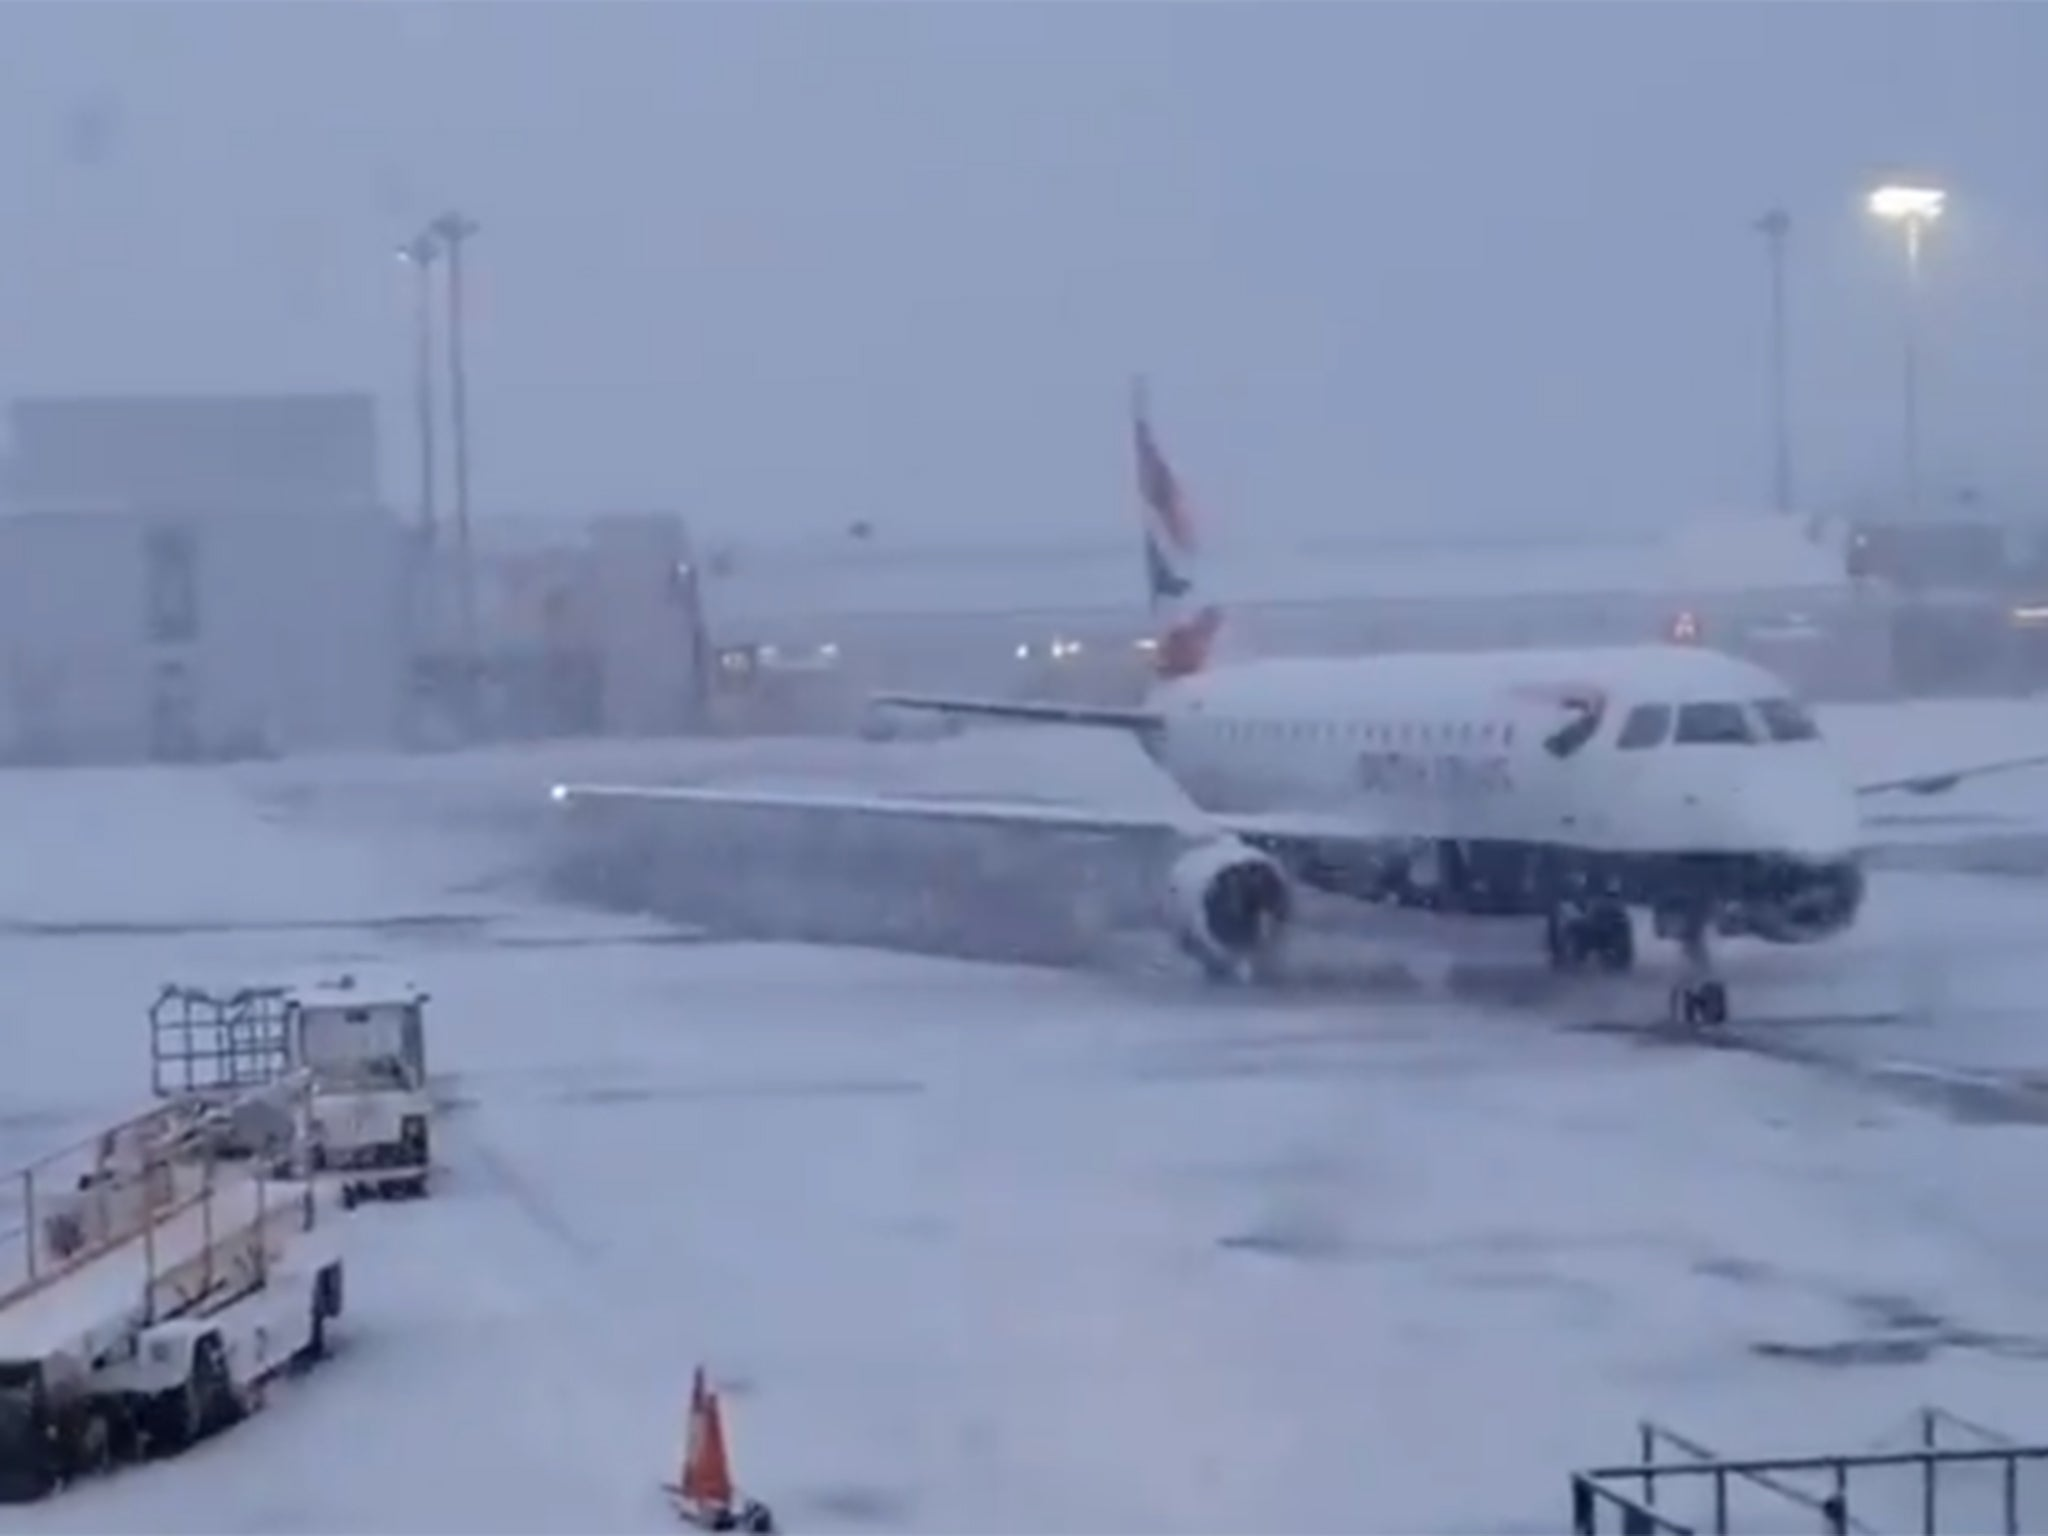 UK snow: Flights cancelled and hundreds of passengers stranded on tarmac amid plummeting temperatures